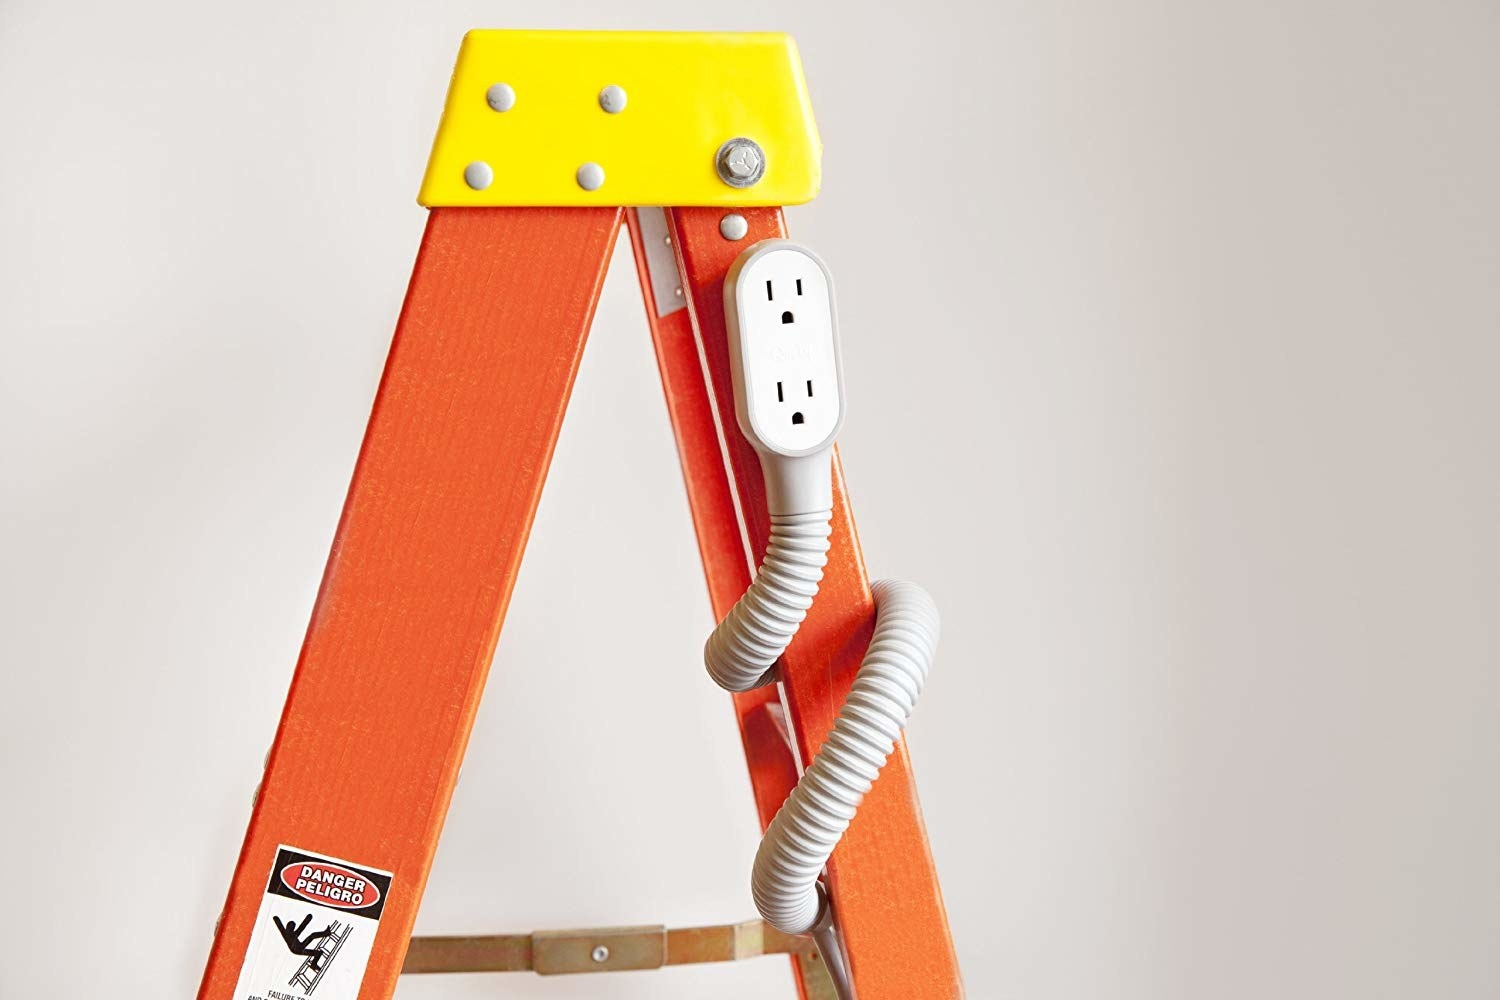 The flexible extension cord wrapped around a ladder.